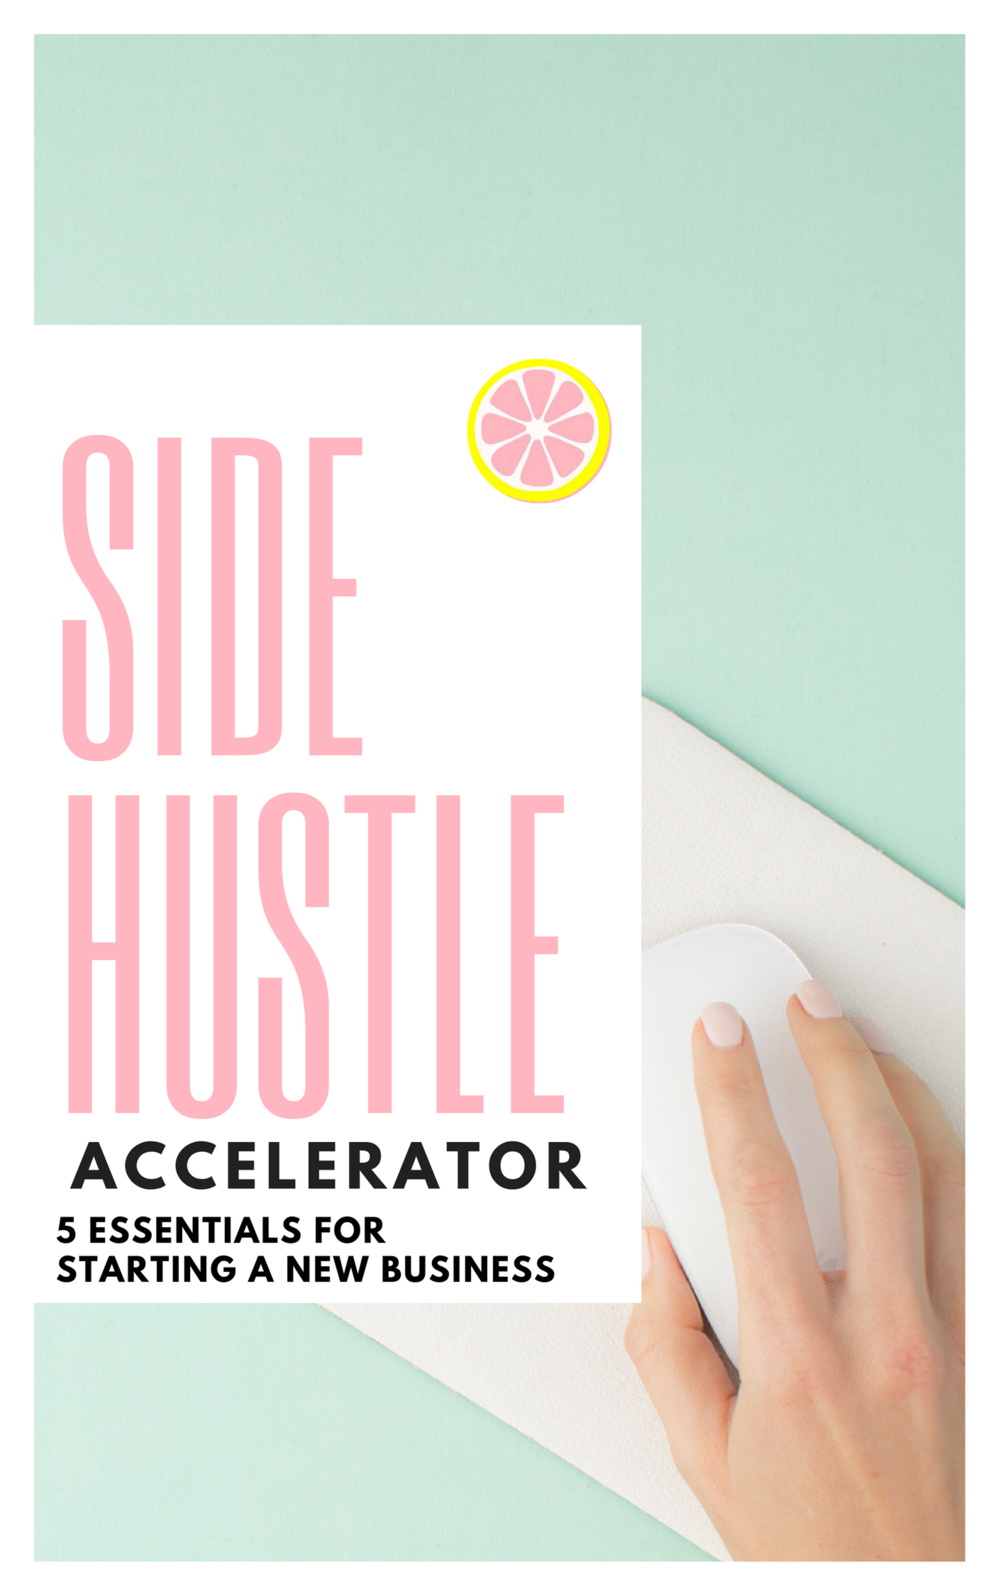 side-hustle-accelerator-start-a-new-business